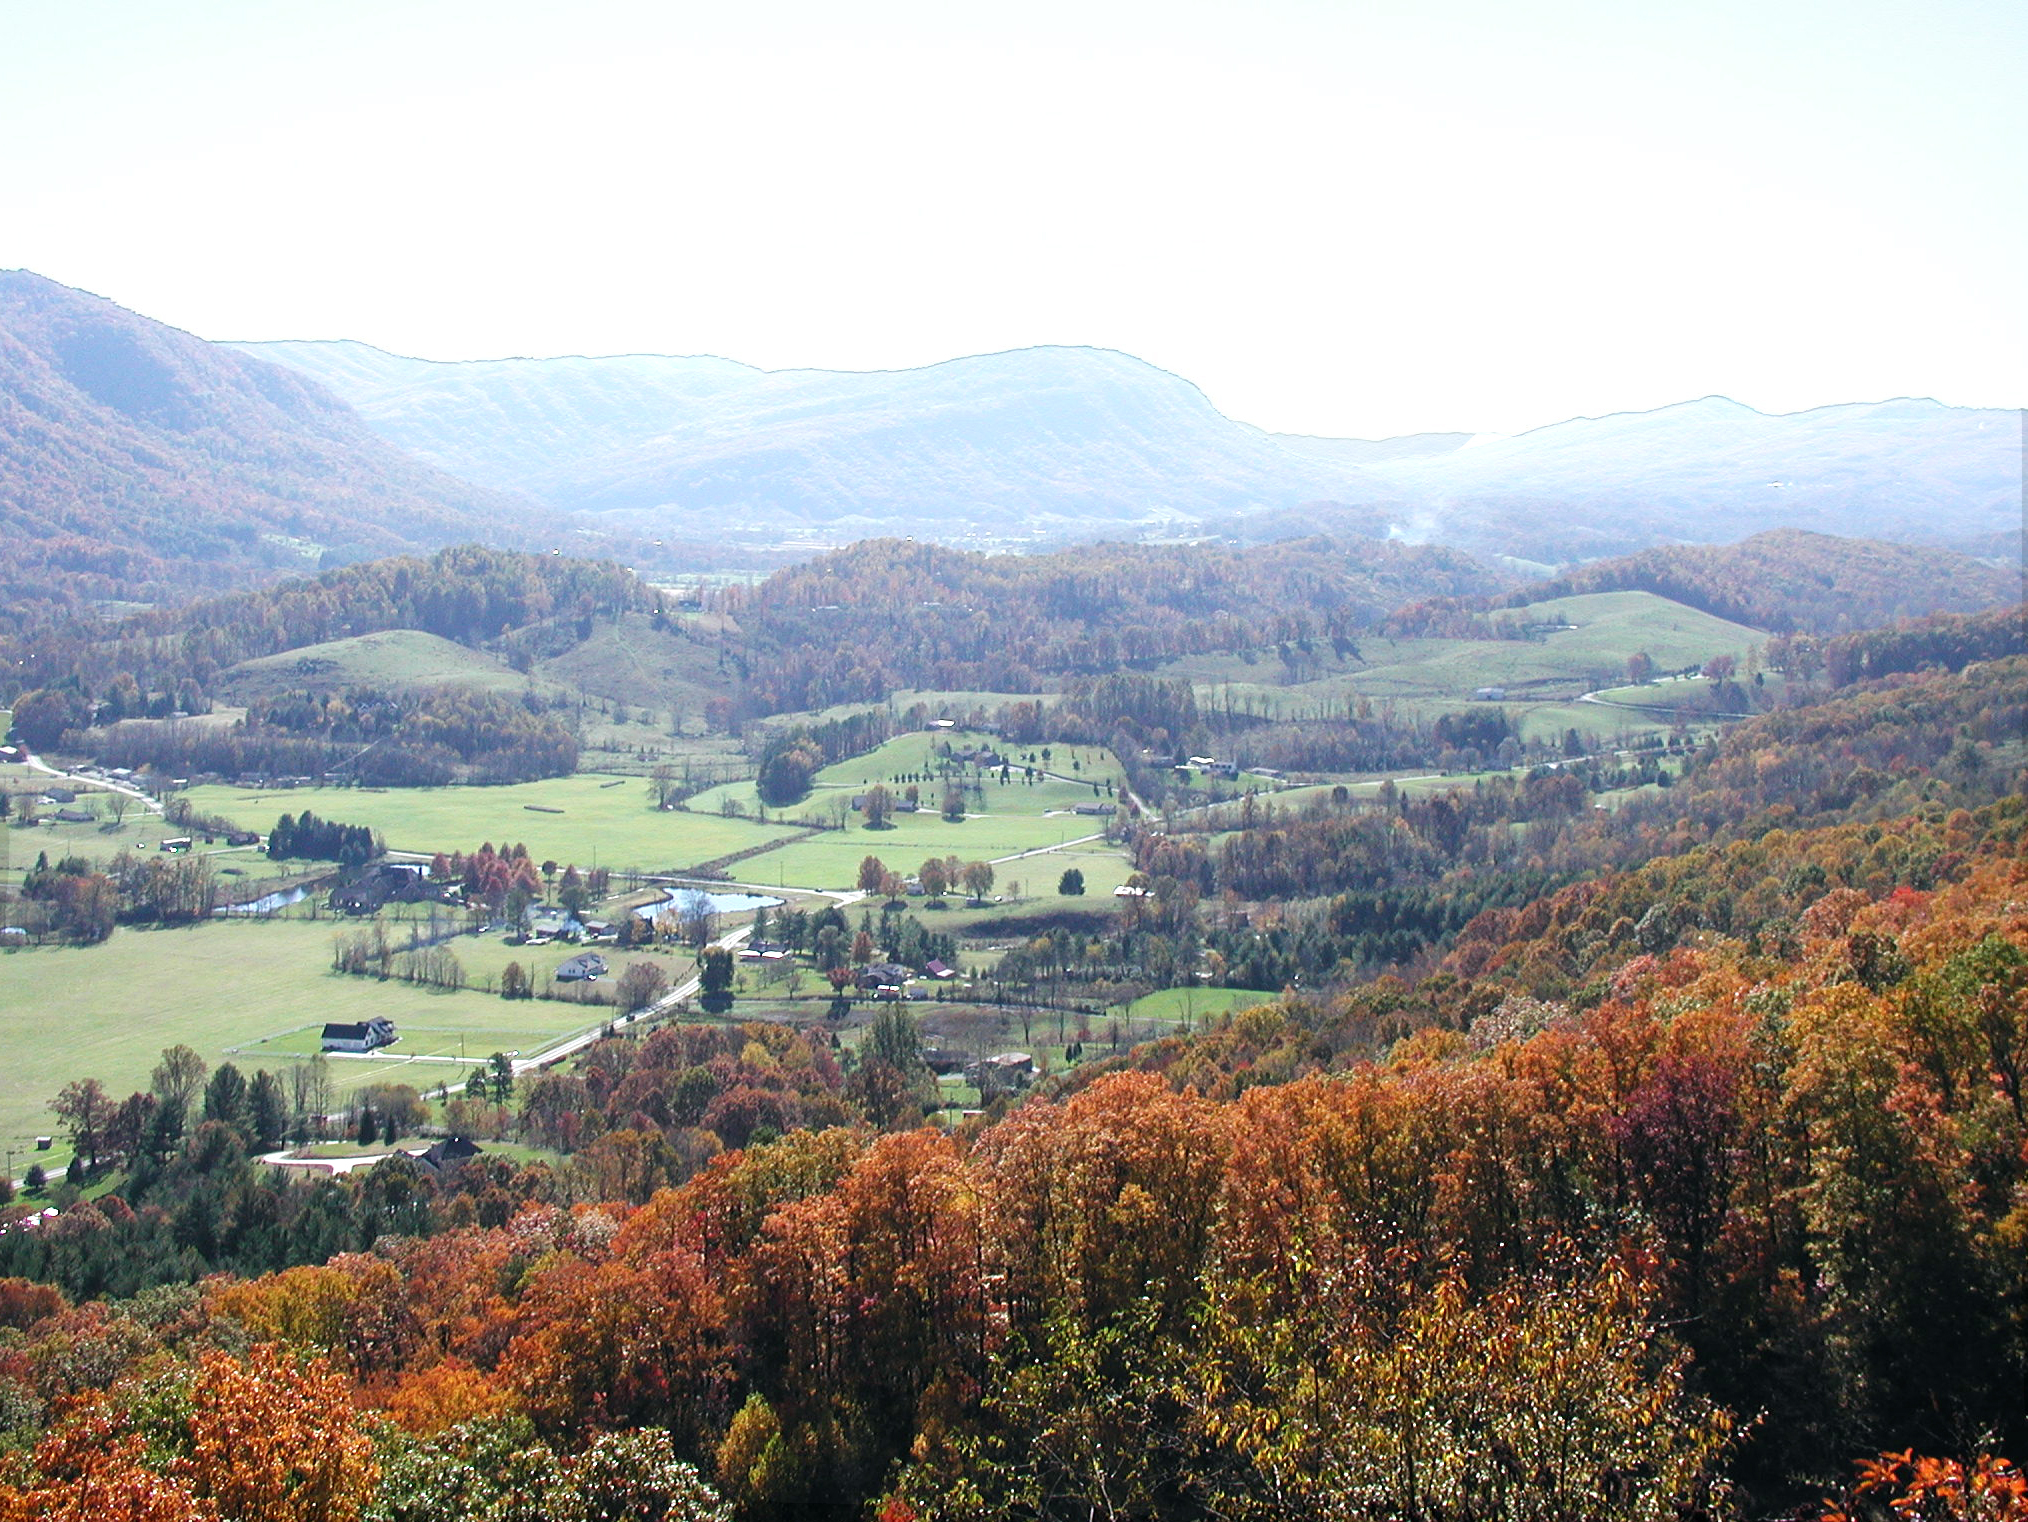 Powell Valley Overlook Near Big Stone Gap, VA